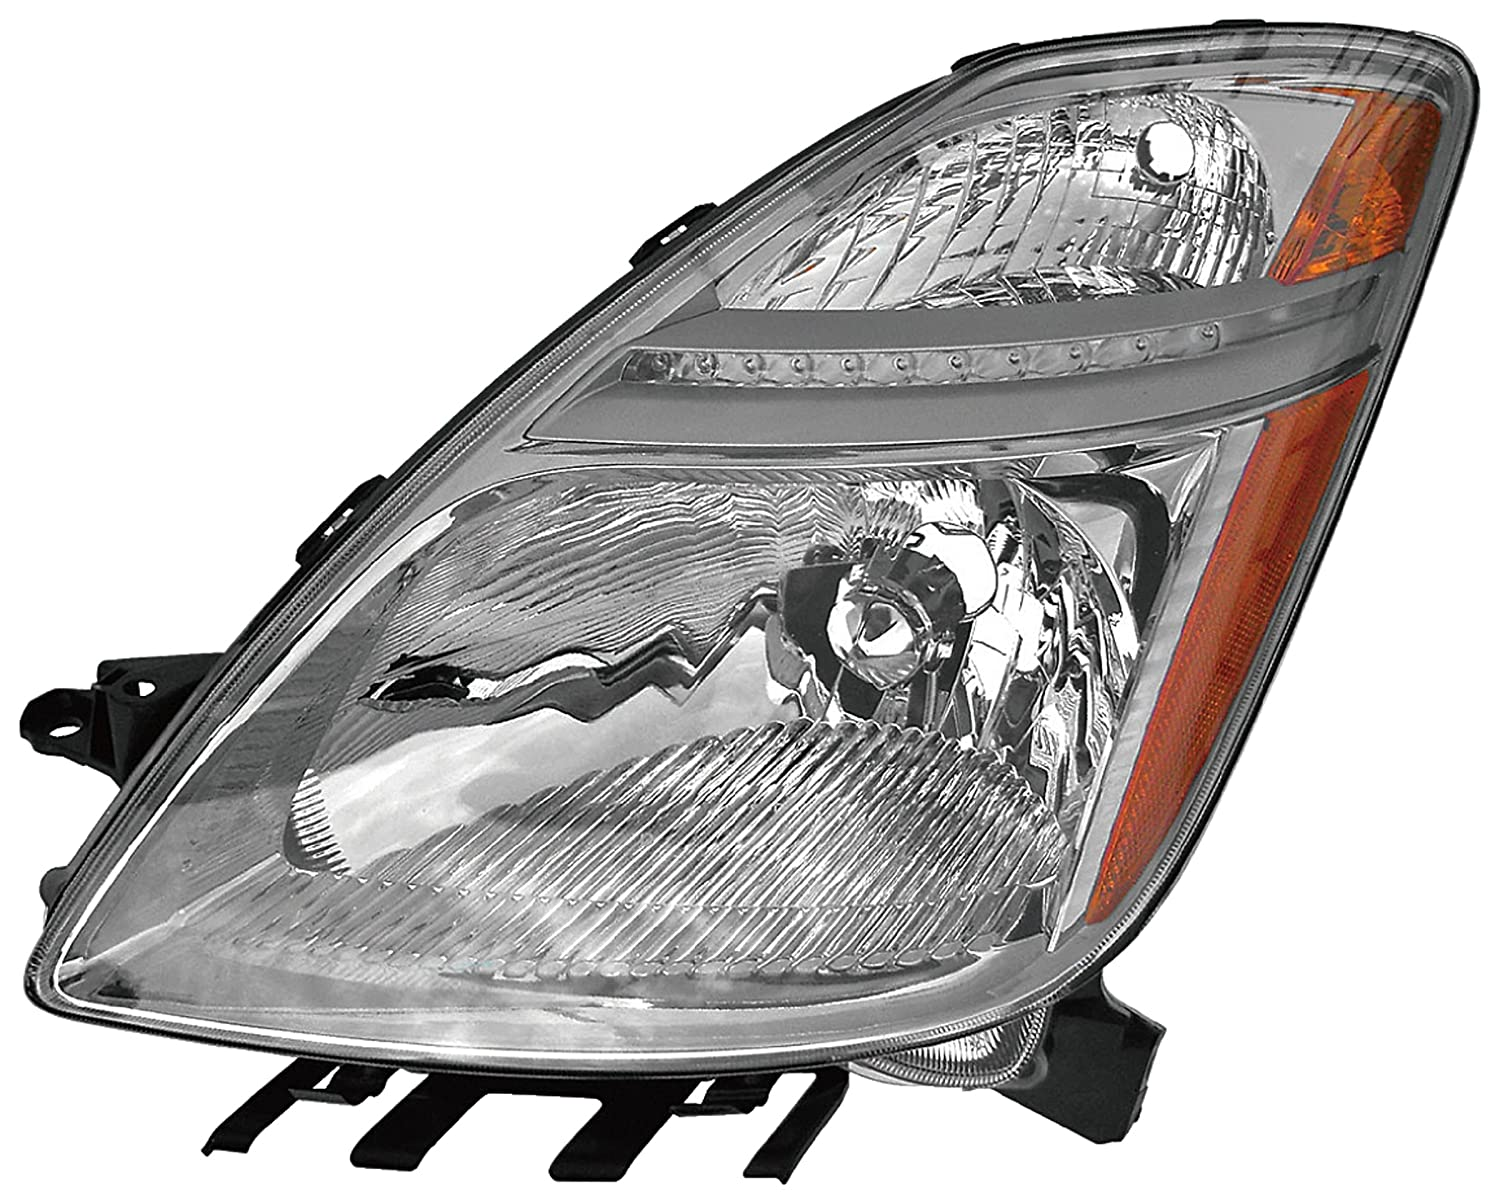 Driver side WITH install kit 6 inch 2013 Mack PINNACLE DAY FAIRING Side Roof mount spotlight 100W Halogen -Black